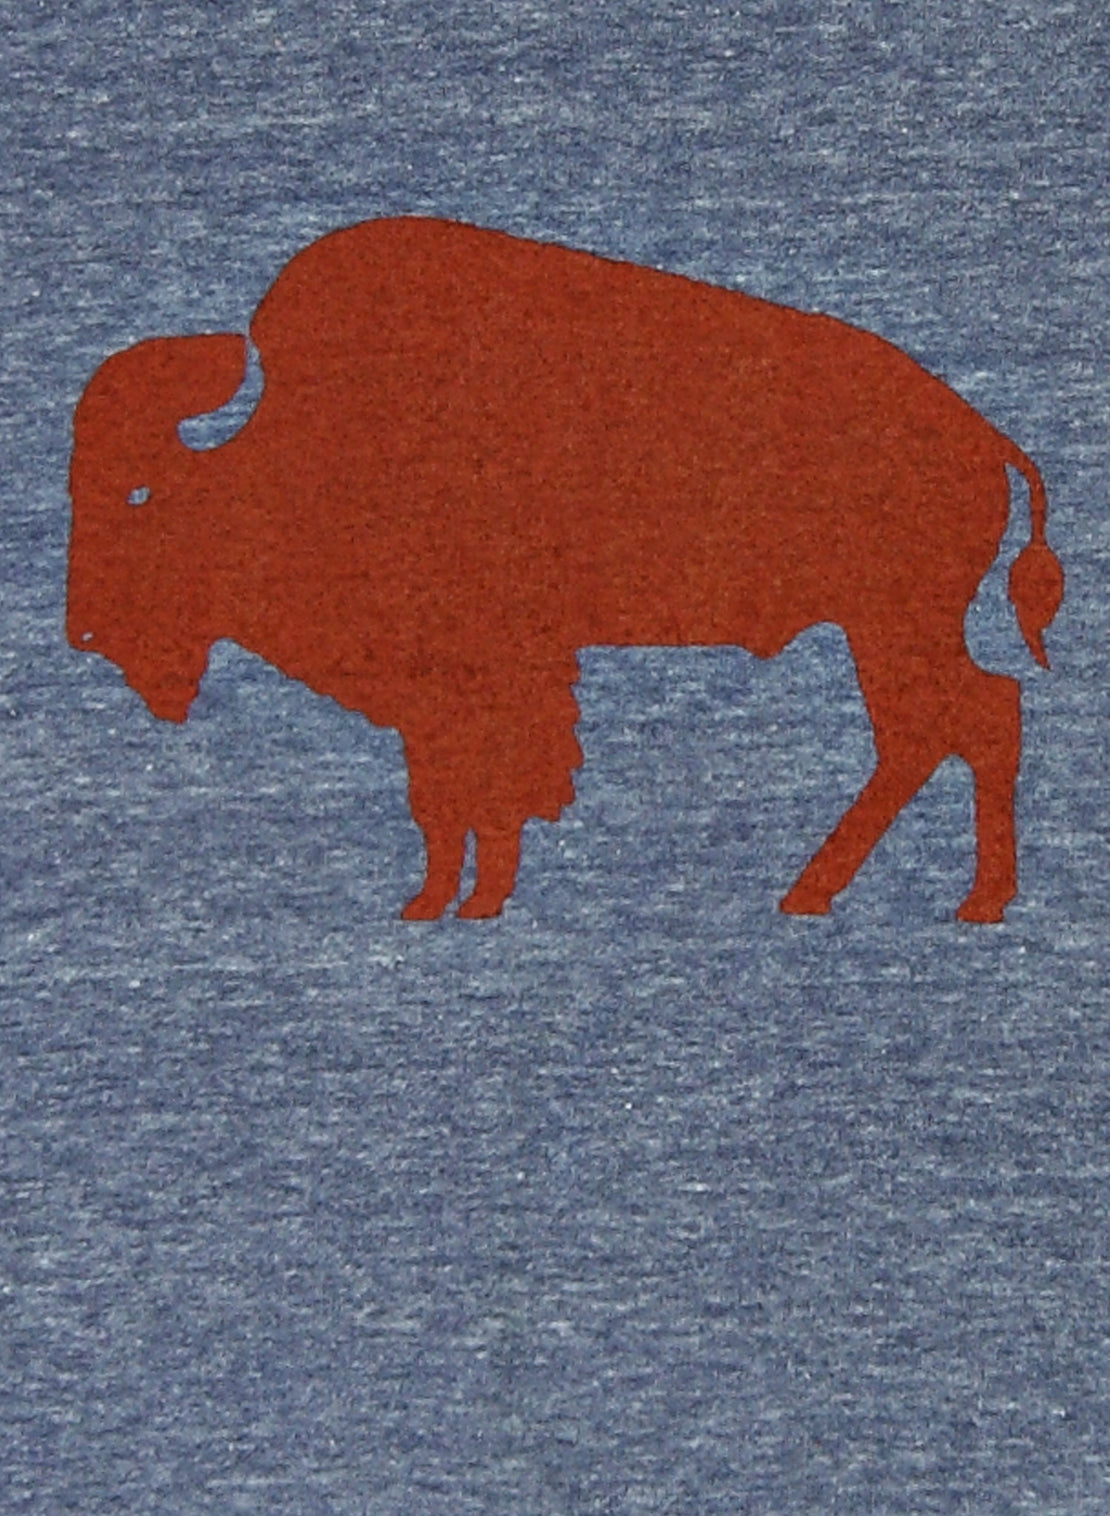 Graphic Tee - Buffalo - Alchemy Design - STAG Provisions - Tops - Graphic Tee